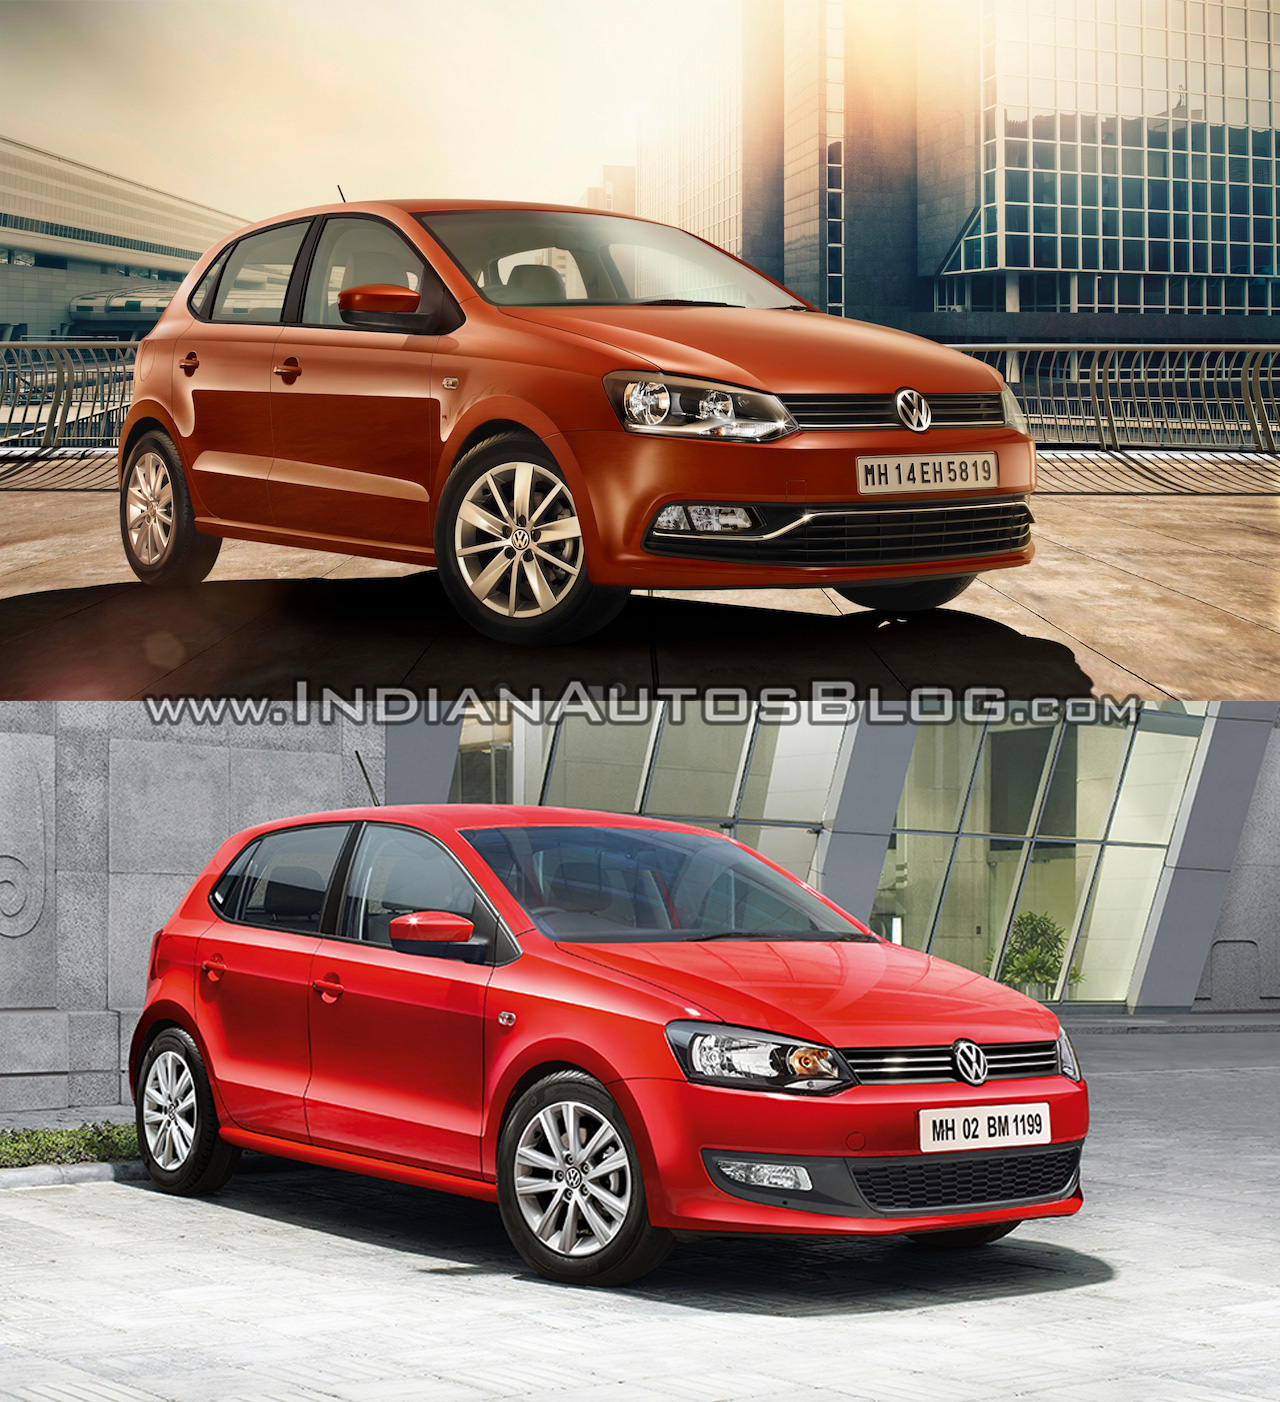 Brand New Vw Polo Old Vs New Vw Polo Facelift Vs Vw Polo Pre Facelift